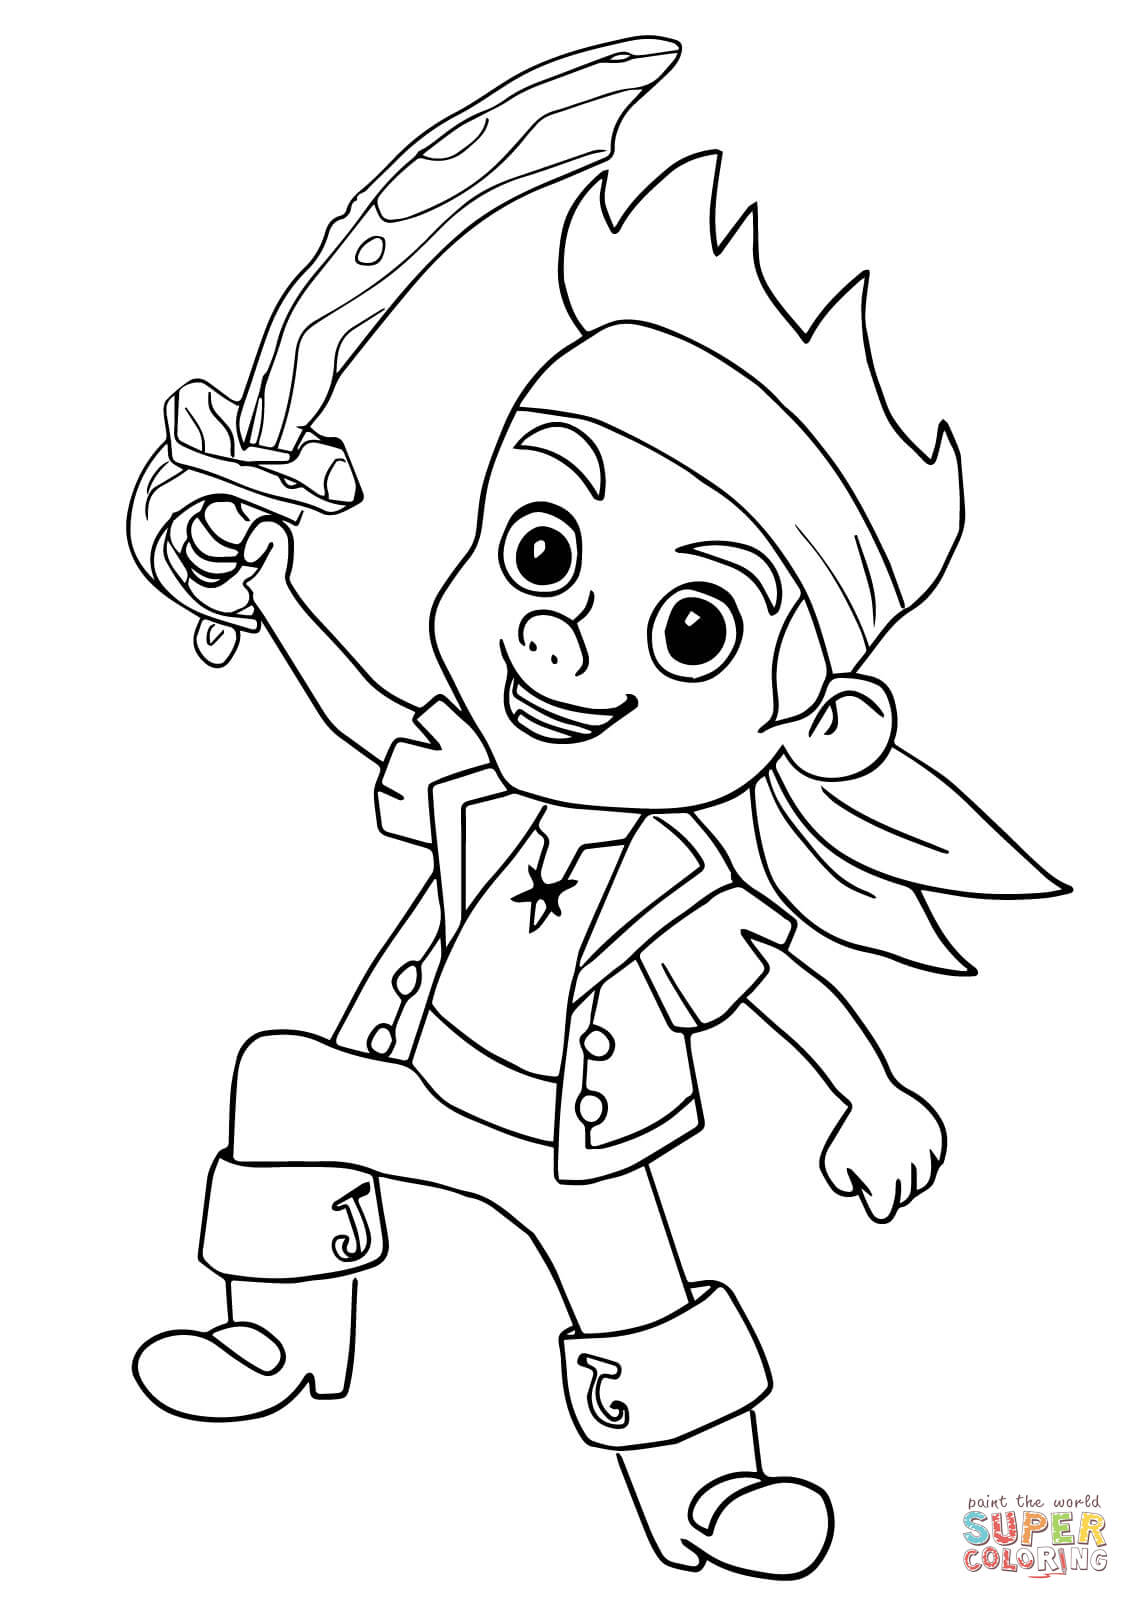 4 Images of Jake The Pirate Printable Coloring Pages